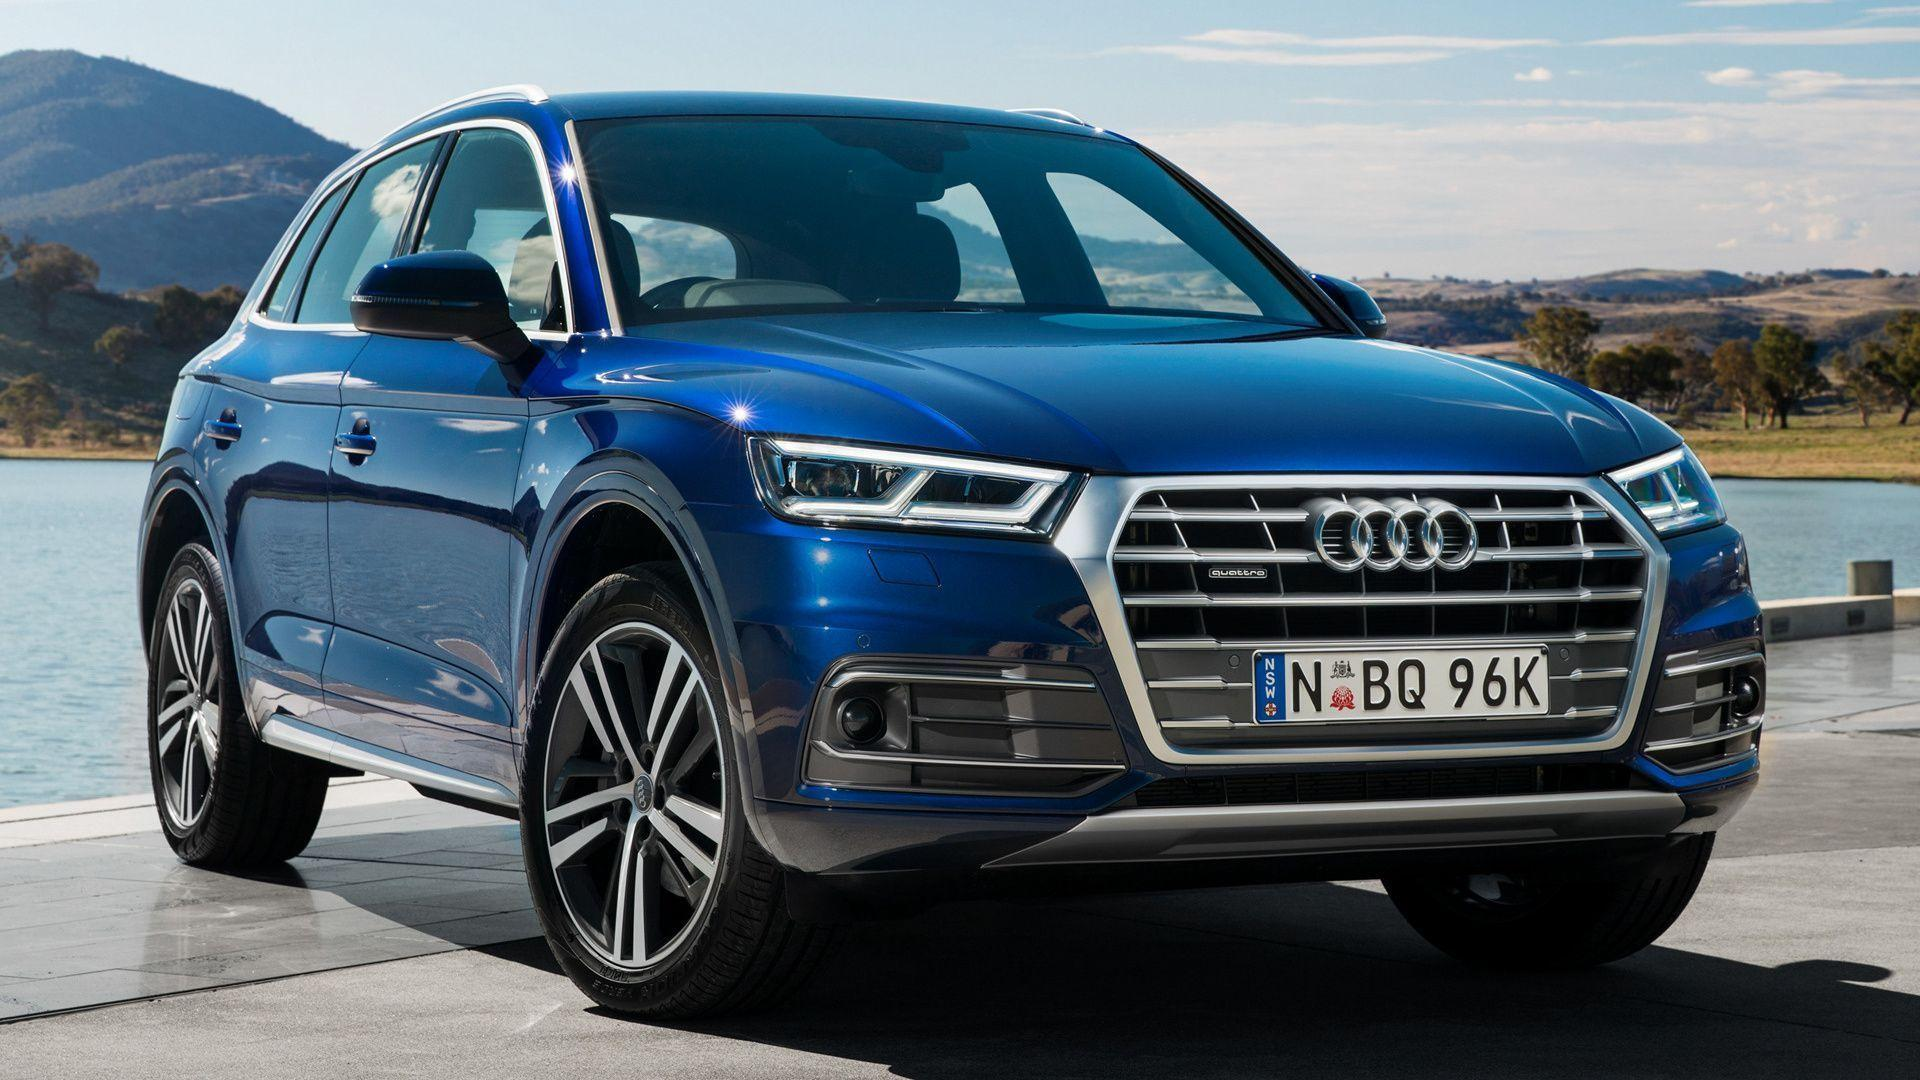 Tag For Audi Q5 Wallpaper Iphone : Free Download Audi Iphone ...